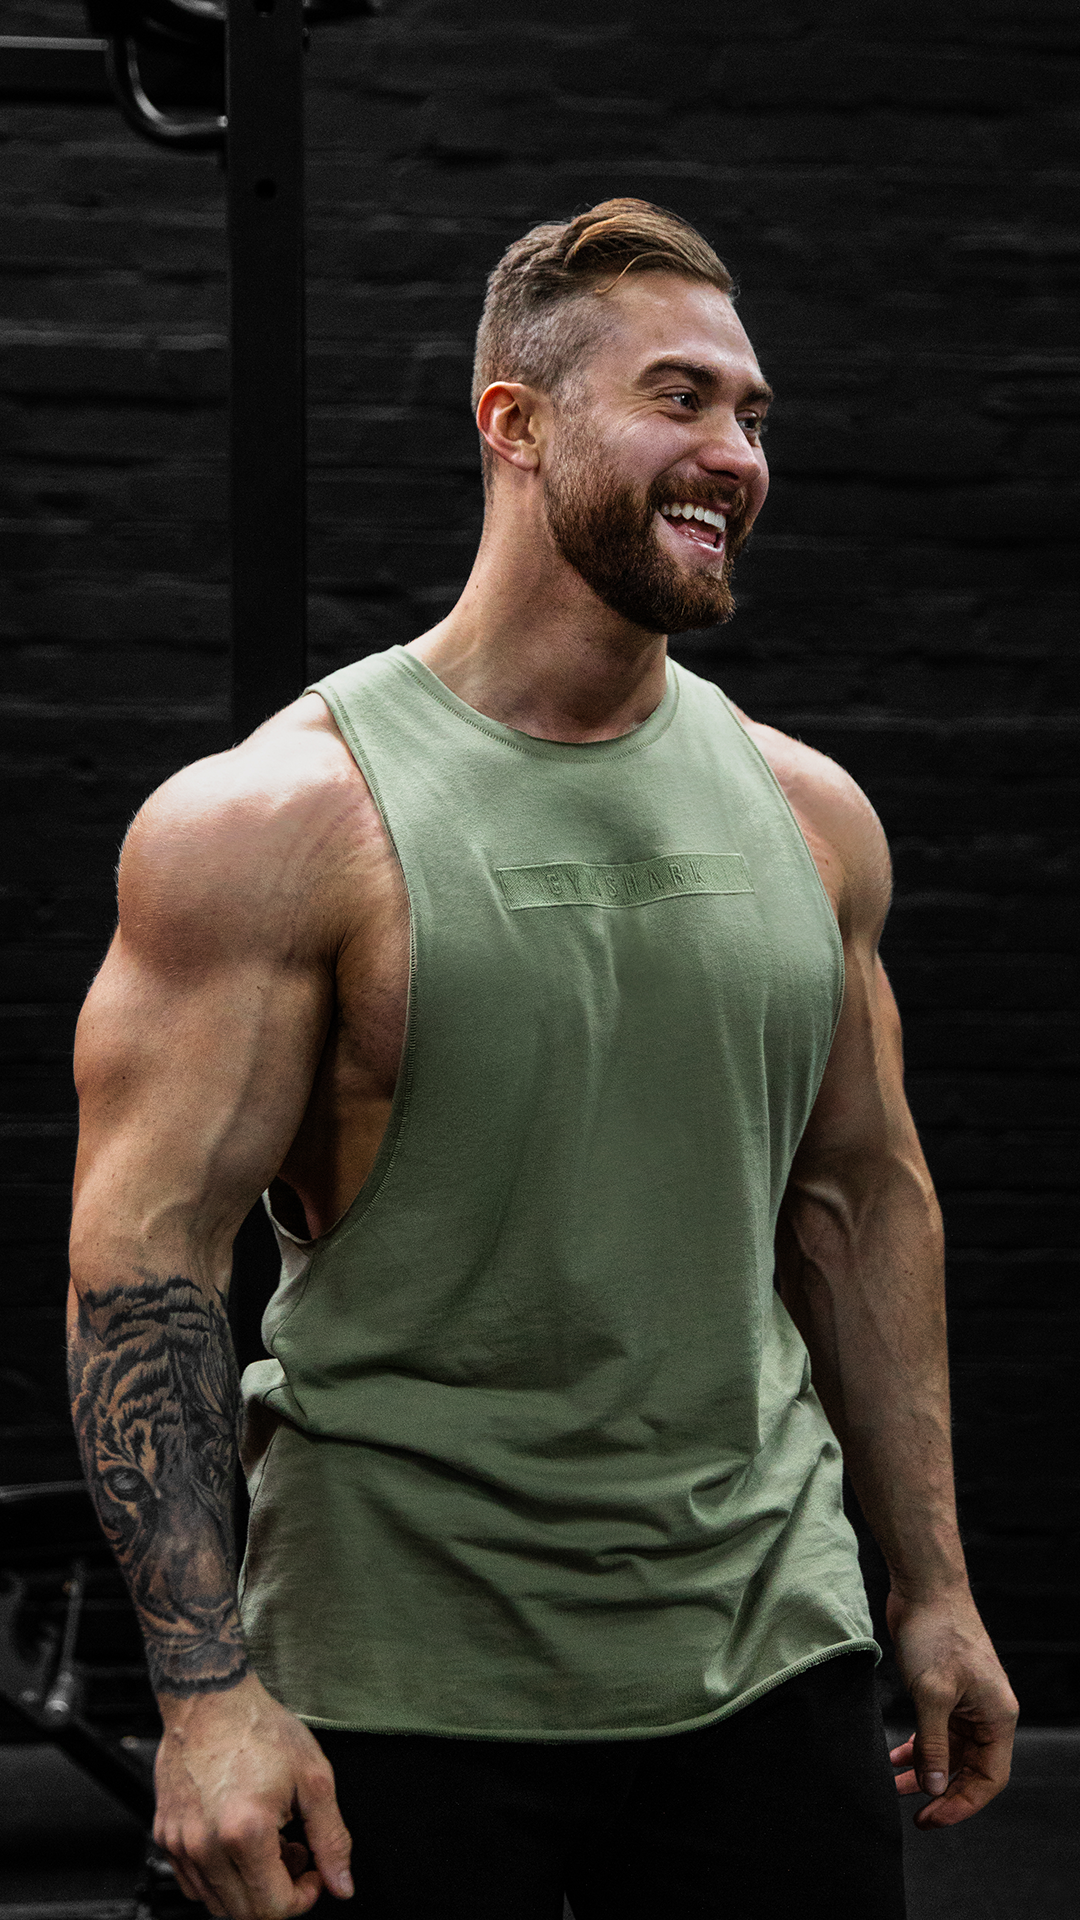 c0327d6a Chris Bumstead (@cbum) styles the Crucial Tank for his upper body workouts!  Killin' the game with the freshest looks! #Gymshark #Gym #Sweat #Train  #Perform ...